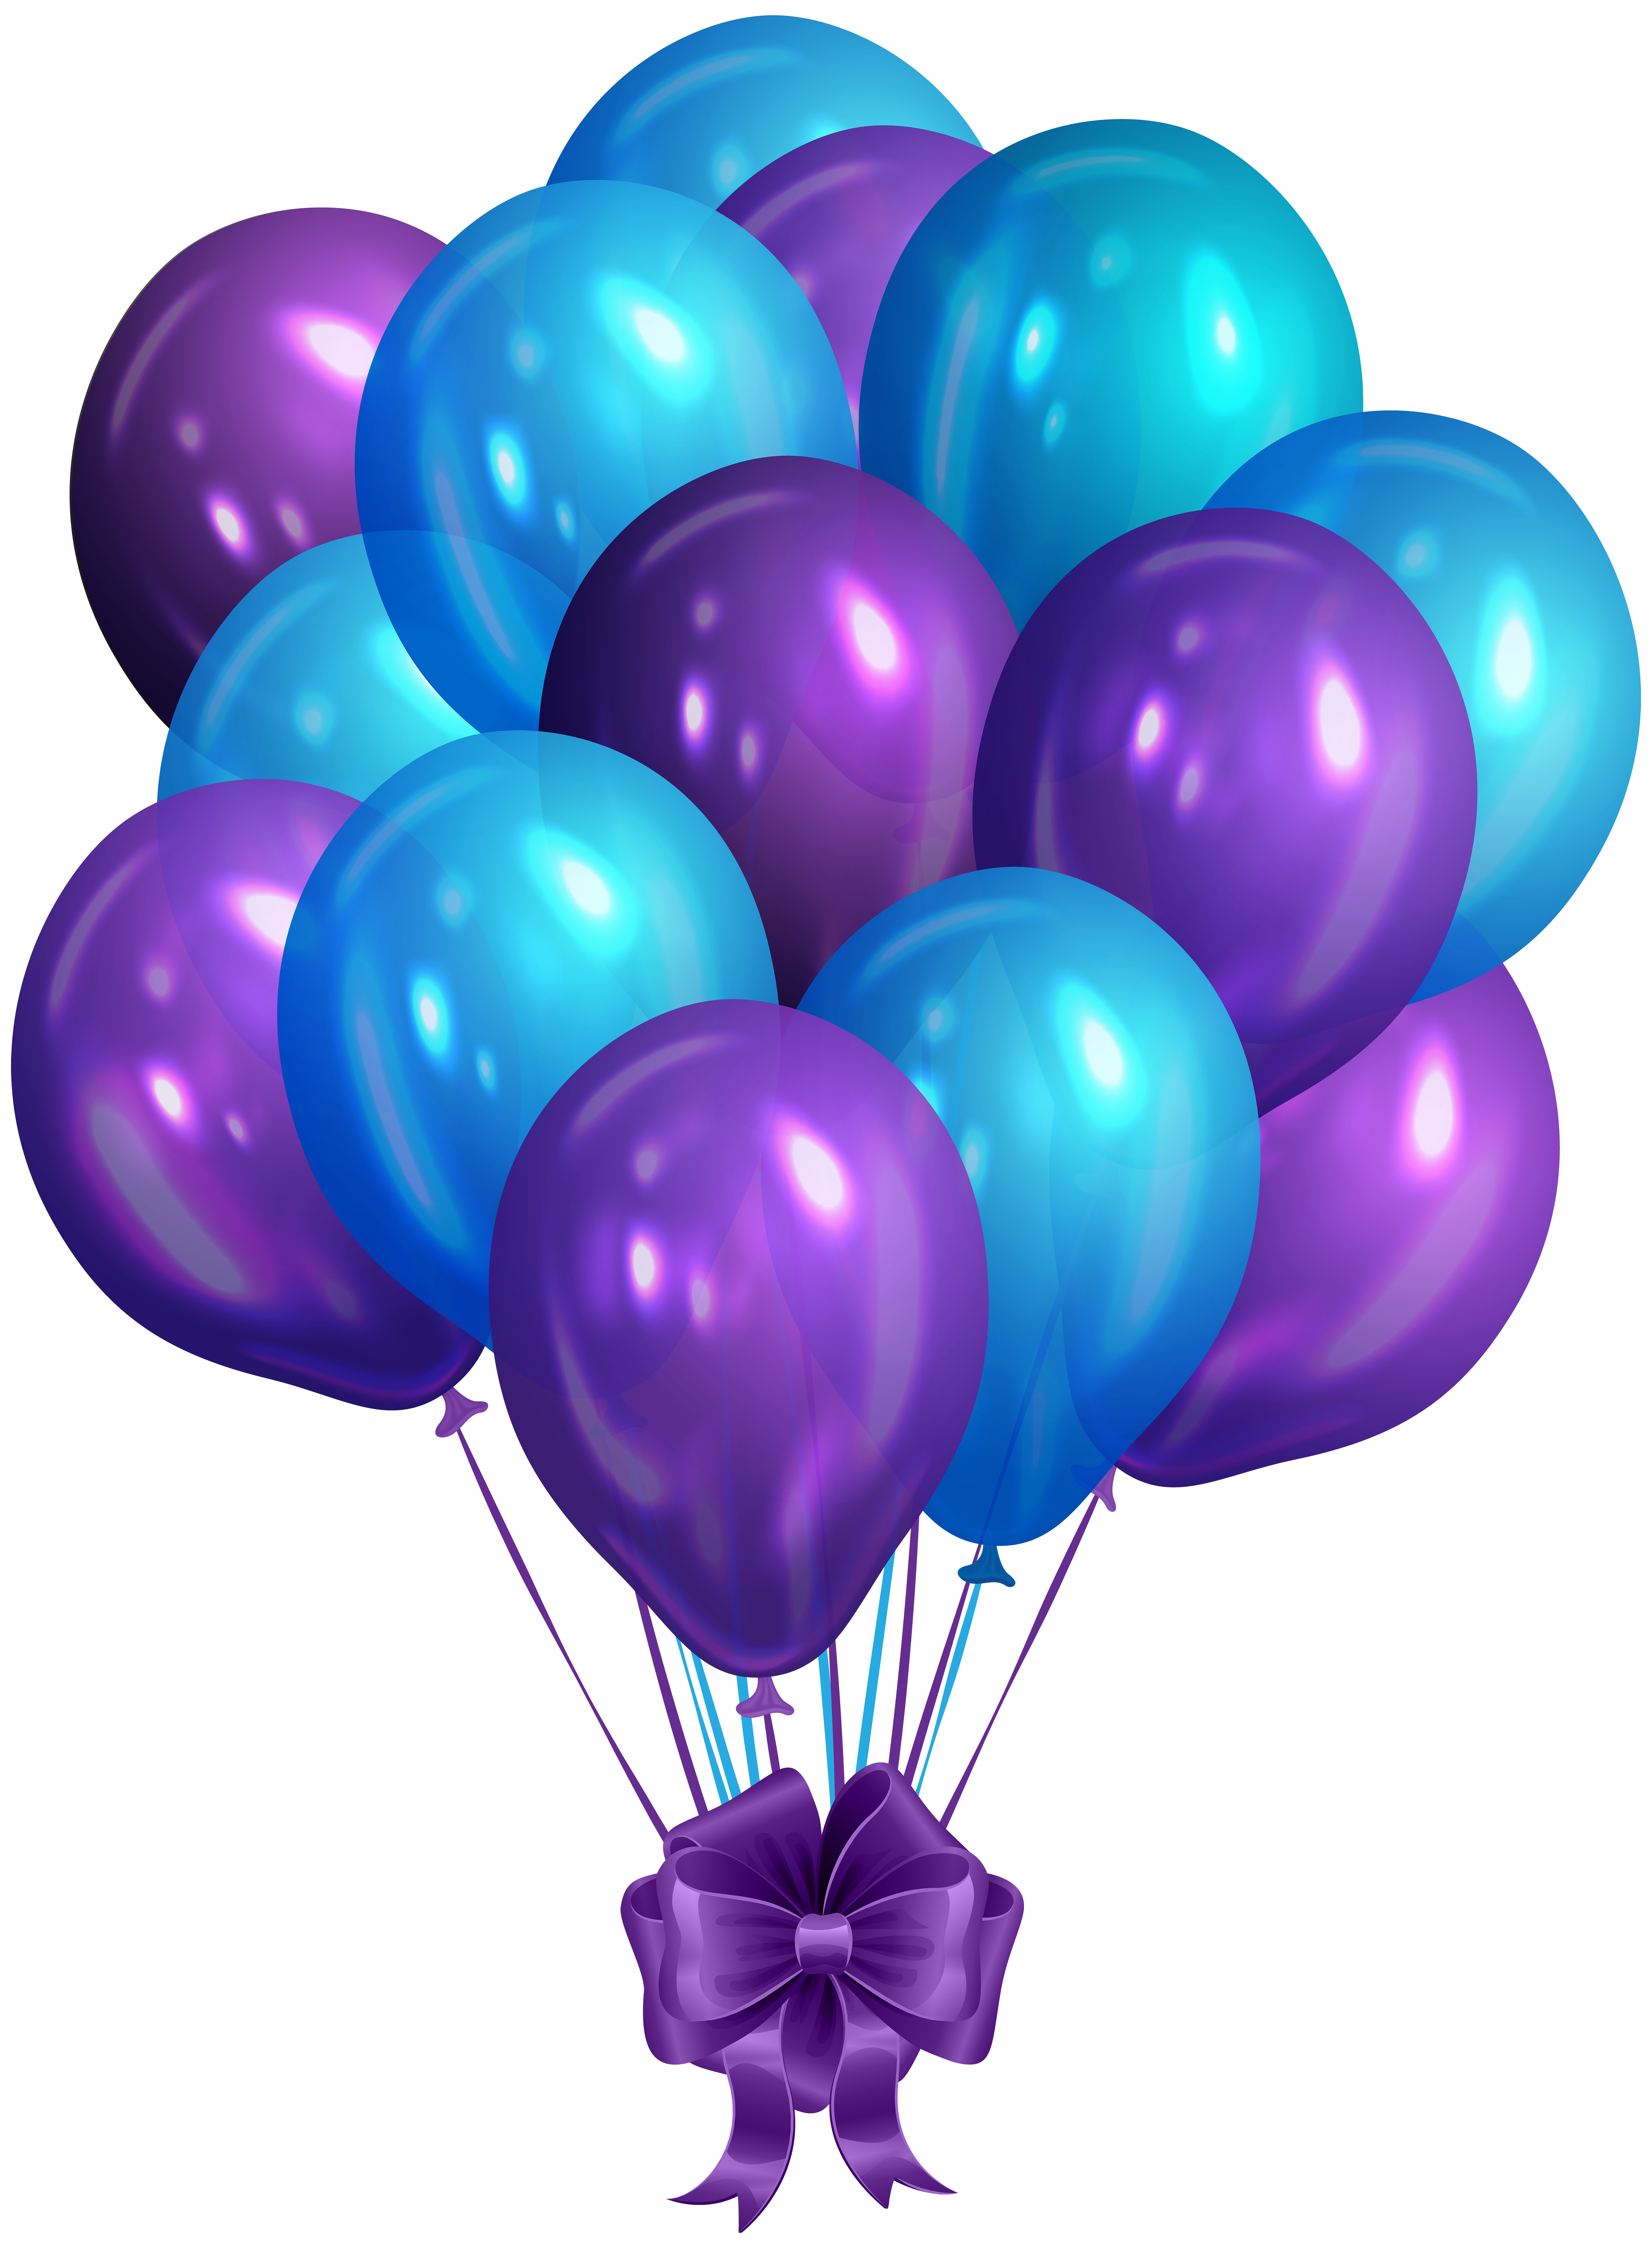 Blue Purple Bunch Of Balloons Clip Art Png Image Gallery Yopriceville High Quality Images And Transparent In 2020 Purple Balloons Balloons Happy Birthday Balloons